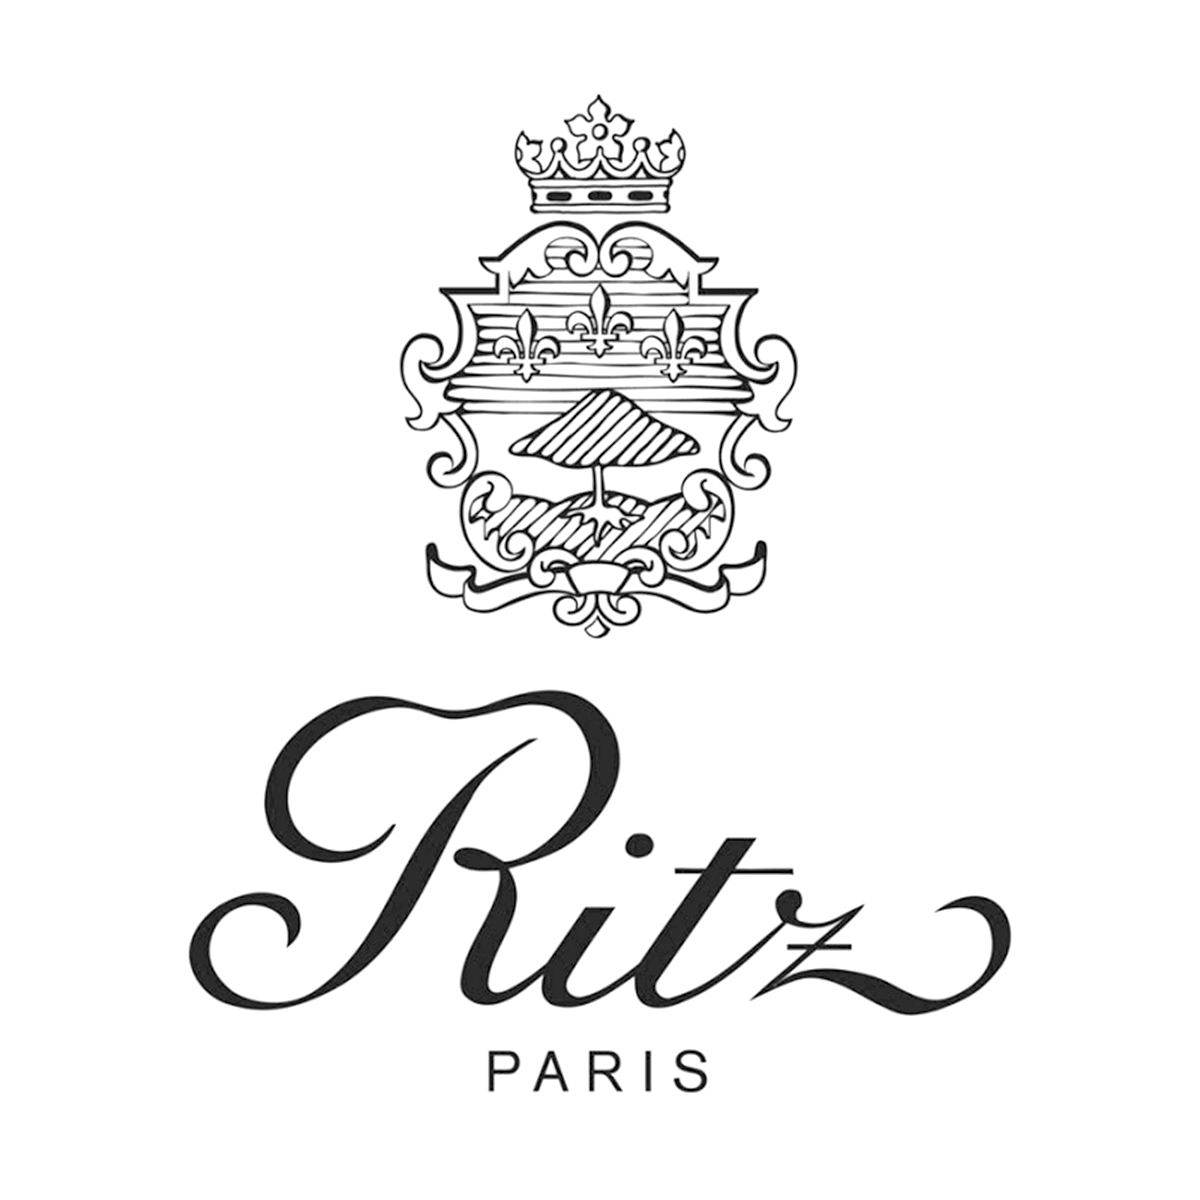 RITZ PARIS LOGO.jpg